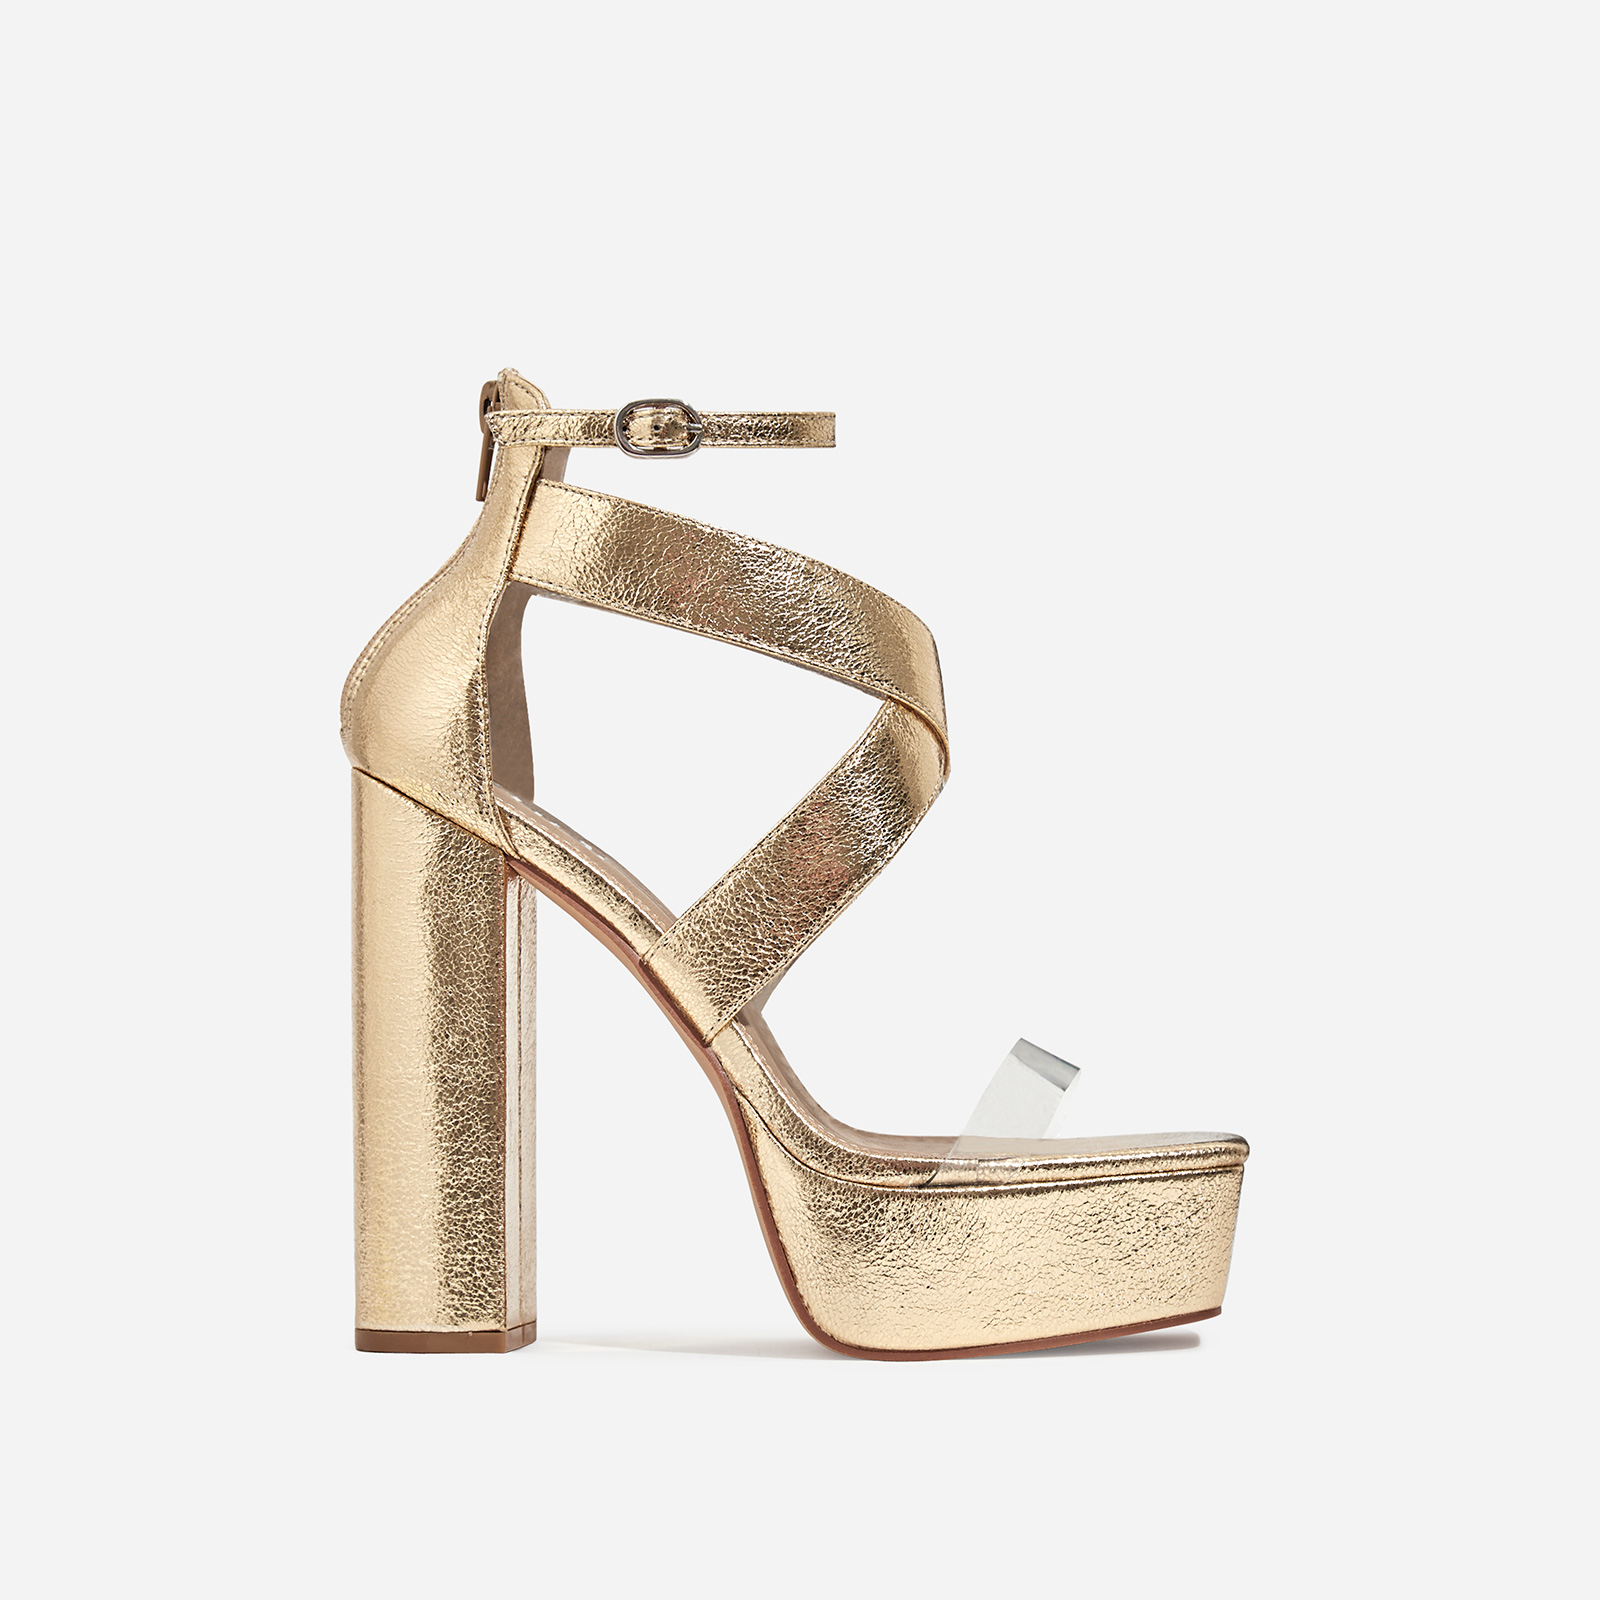 Nirvana Platform Square Toe Perspex Heel In Gold Faux Leather